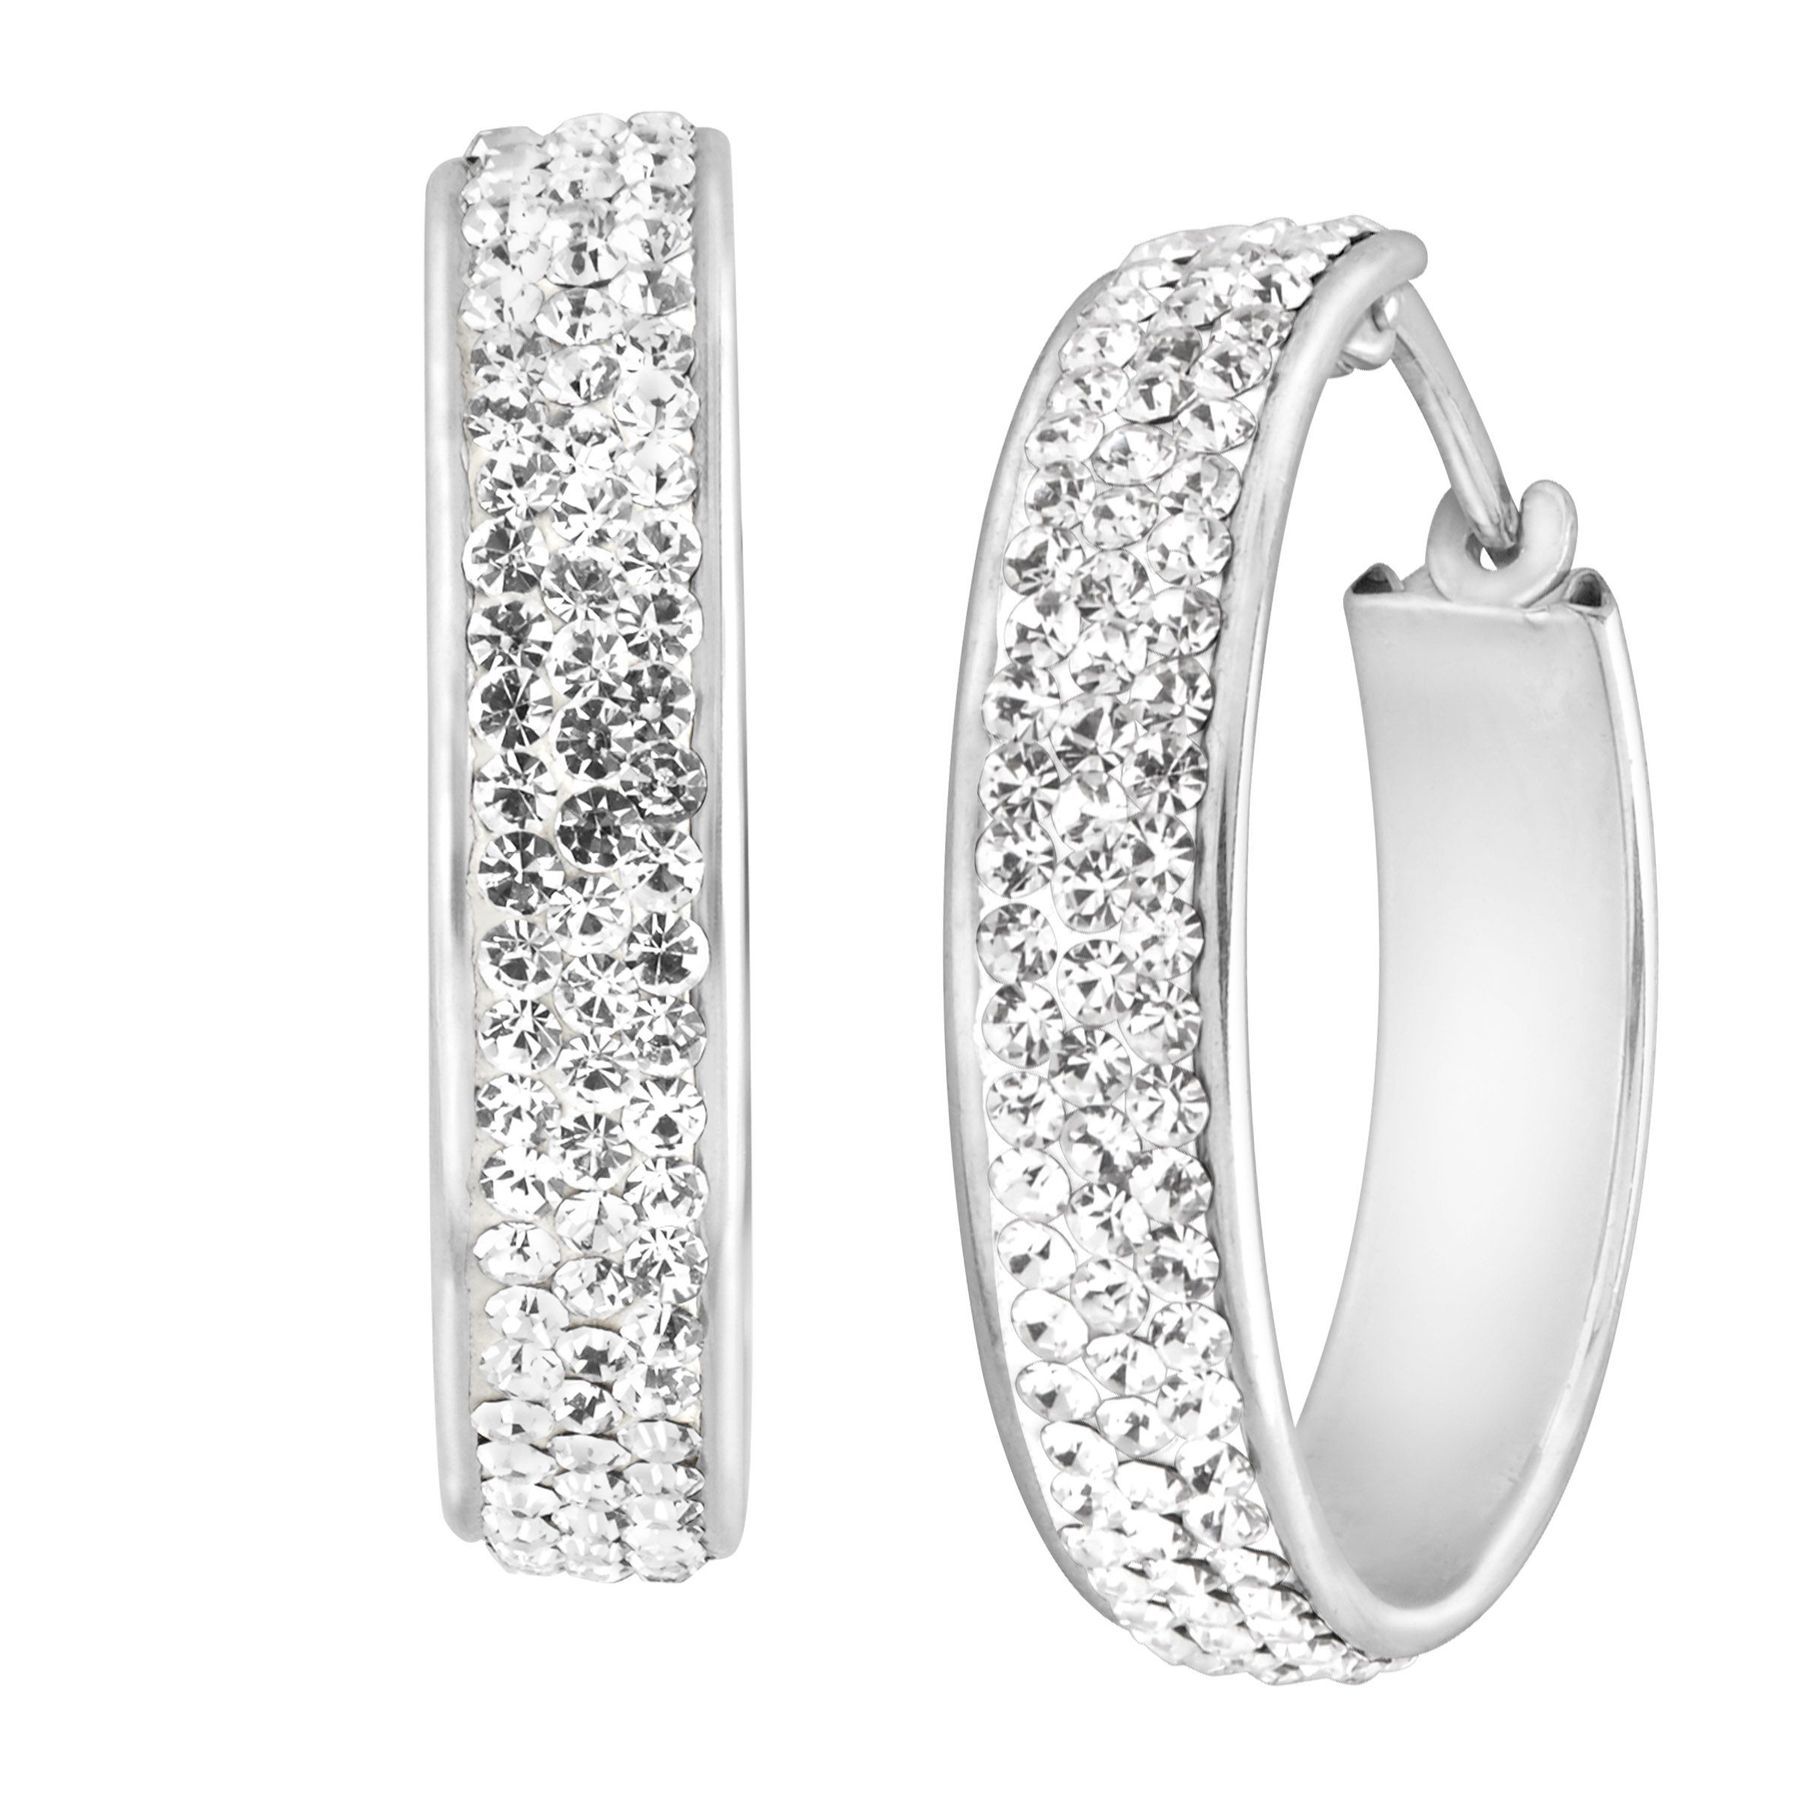 Crystaluxe Hoop Earrings With White